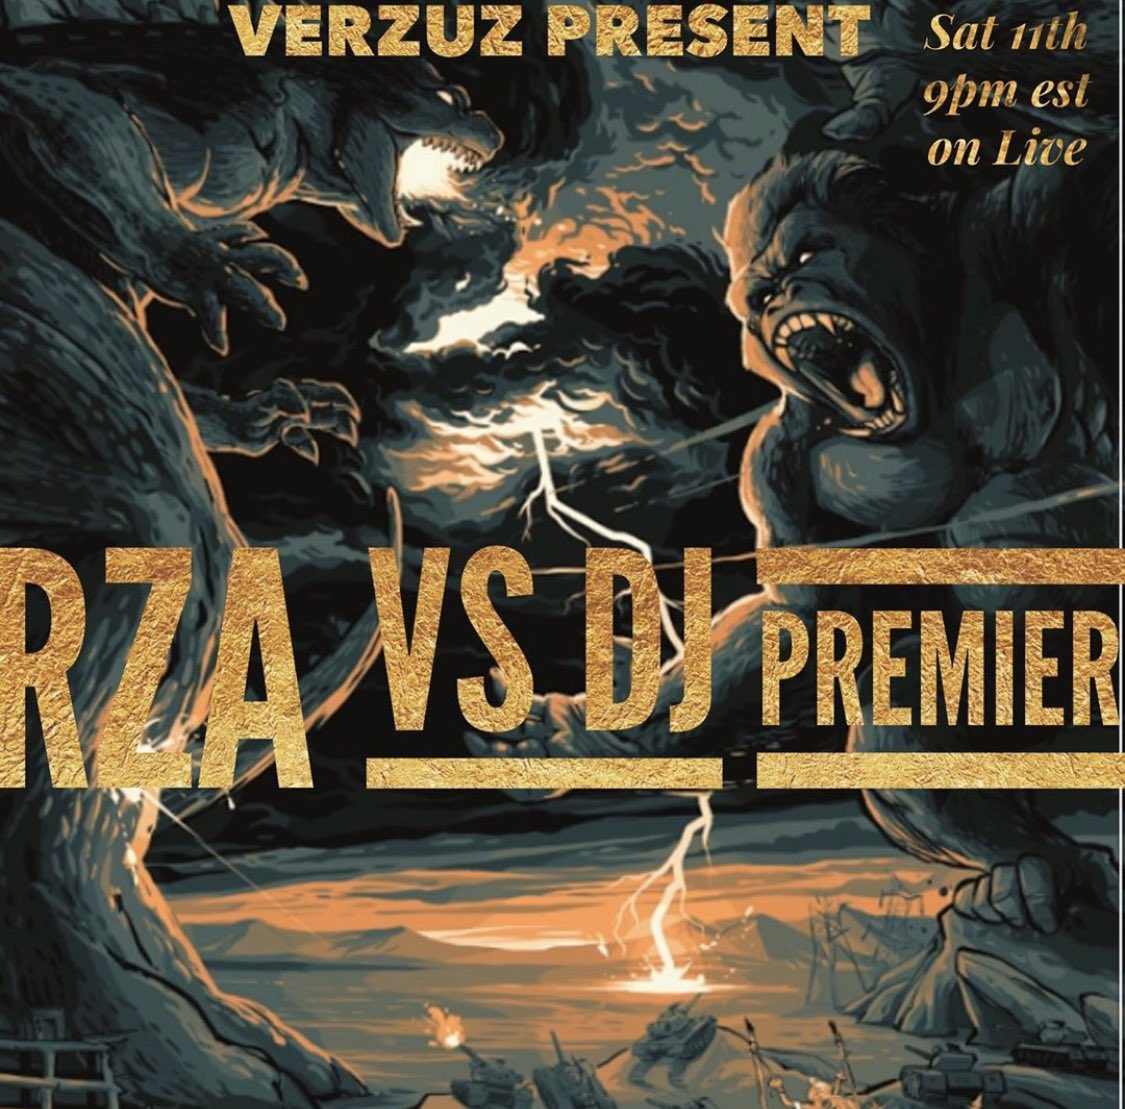 WOW!!!! 😳😳😳😳 @RZA vs @REALDJPREMIER this Saturday! 🔥🔥🔥